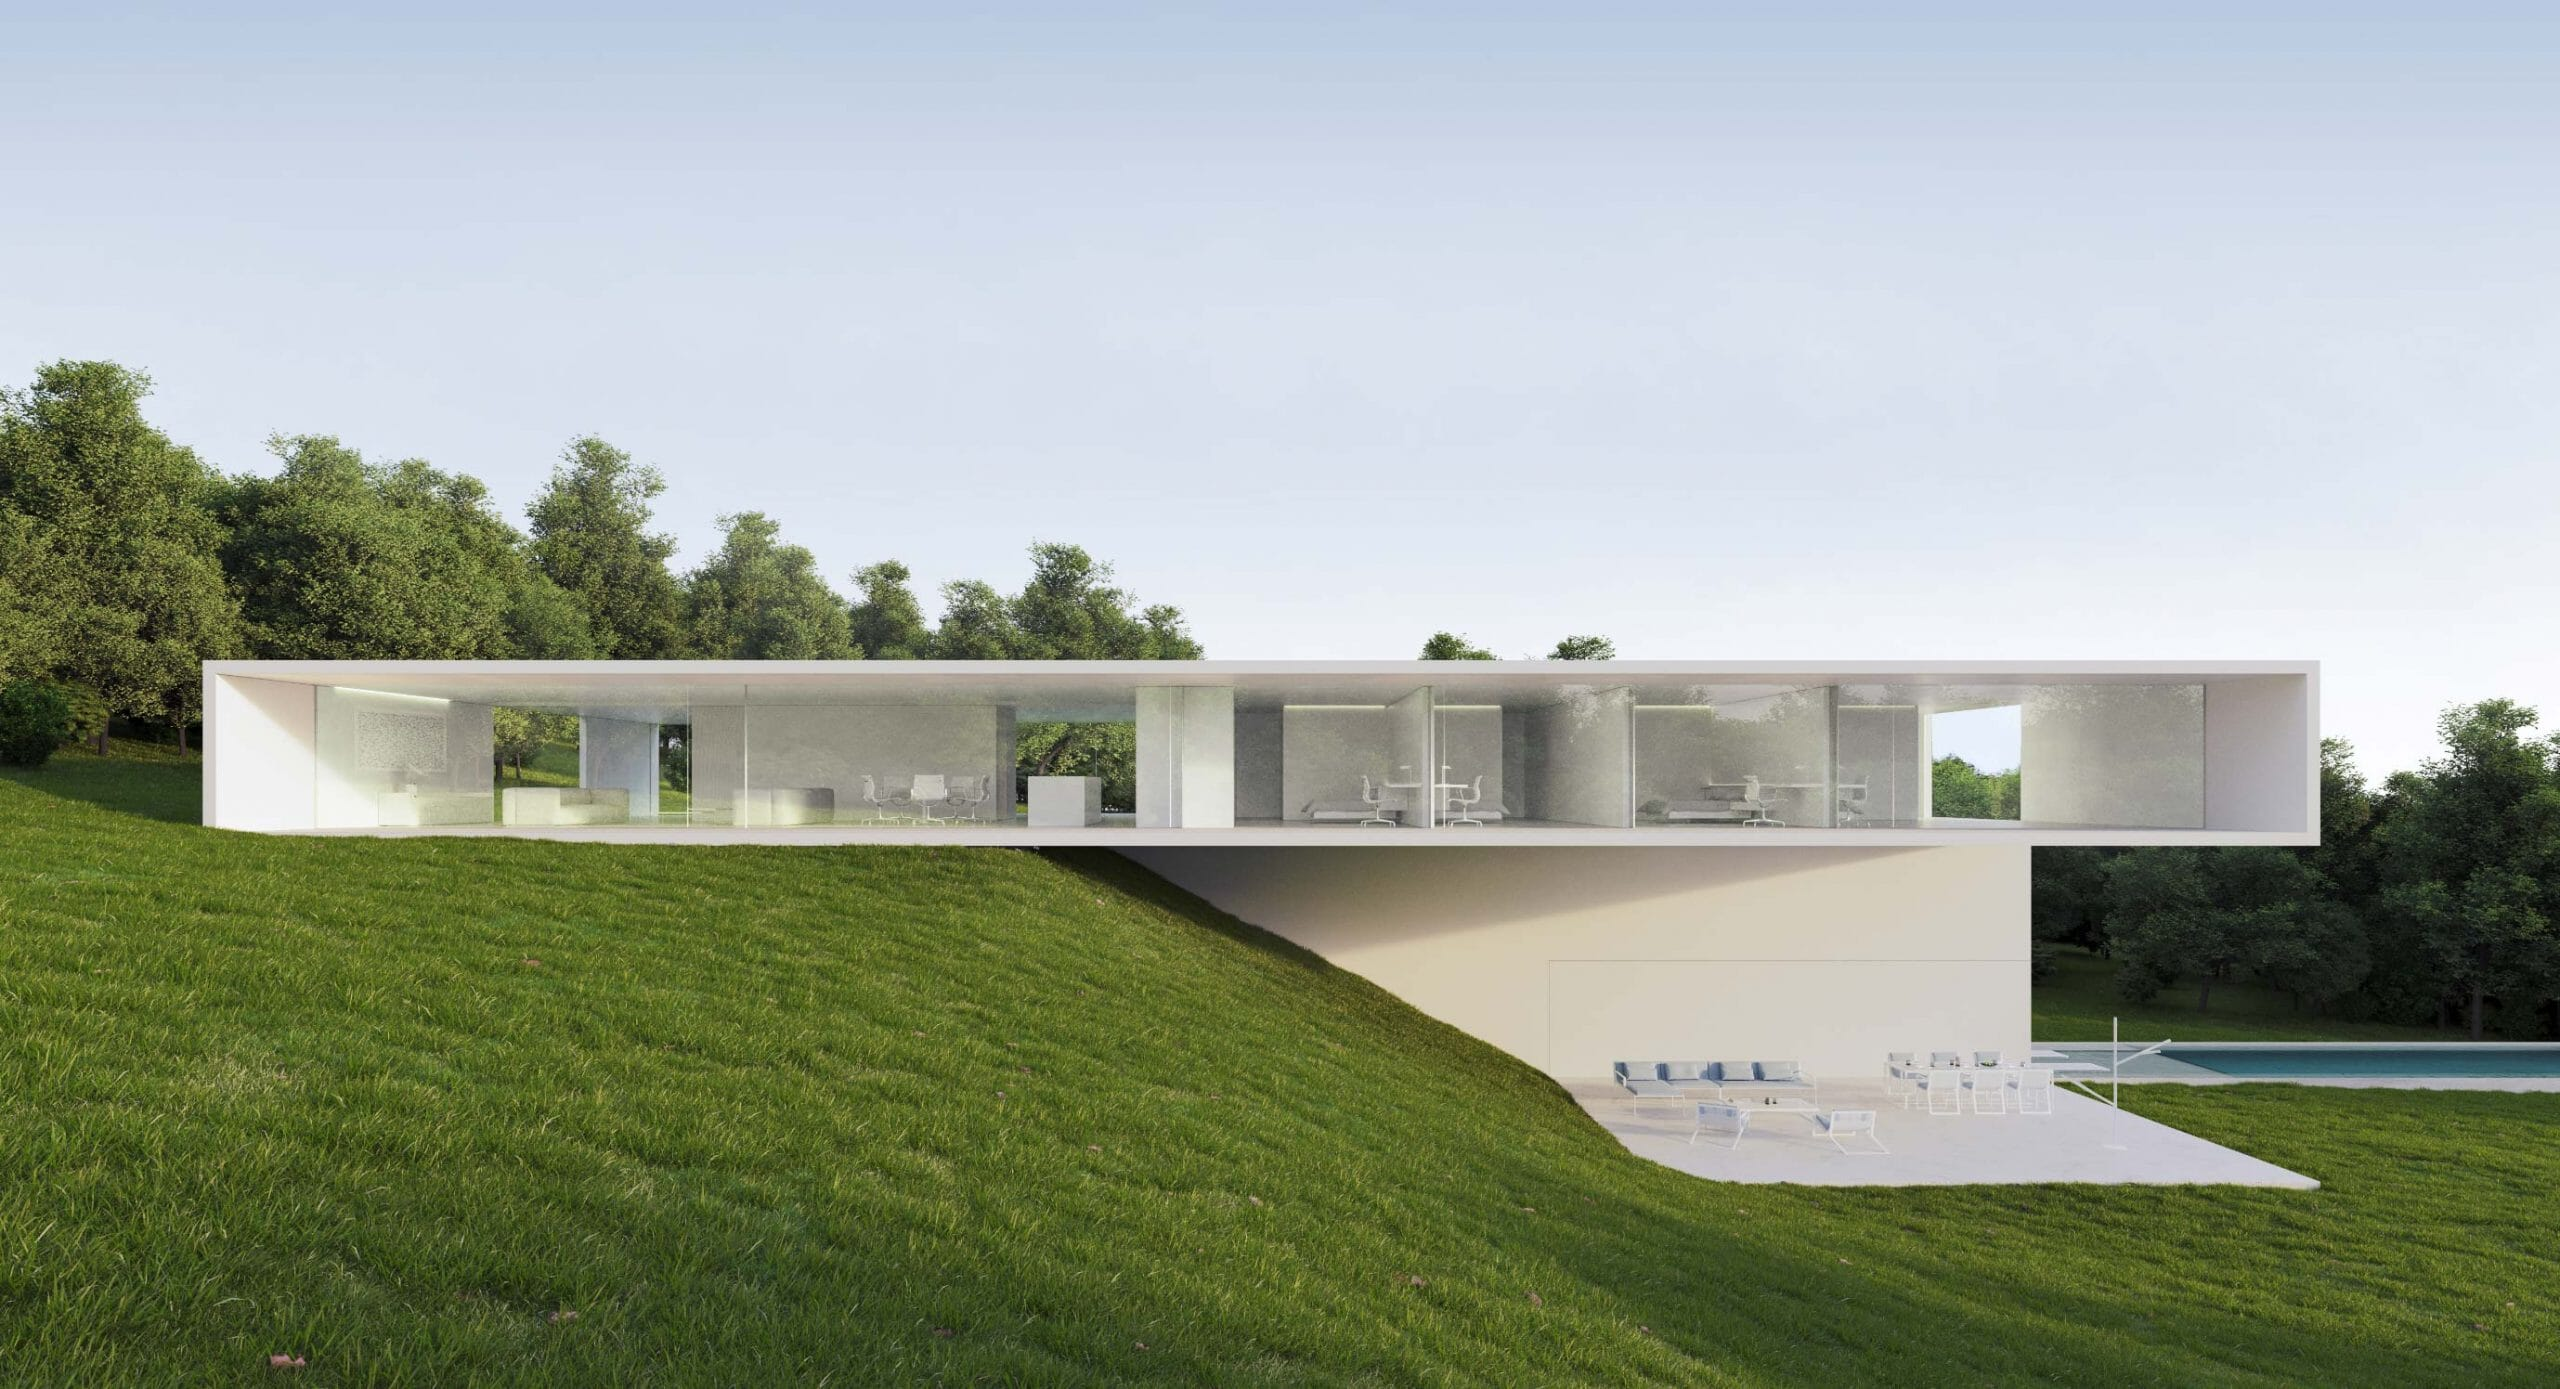 House in Benahavís: Reacting to environment